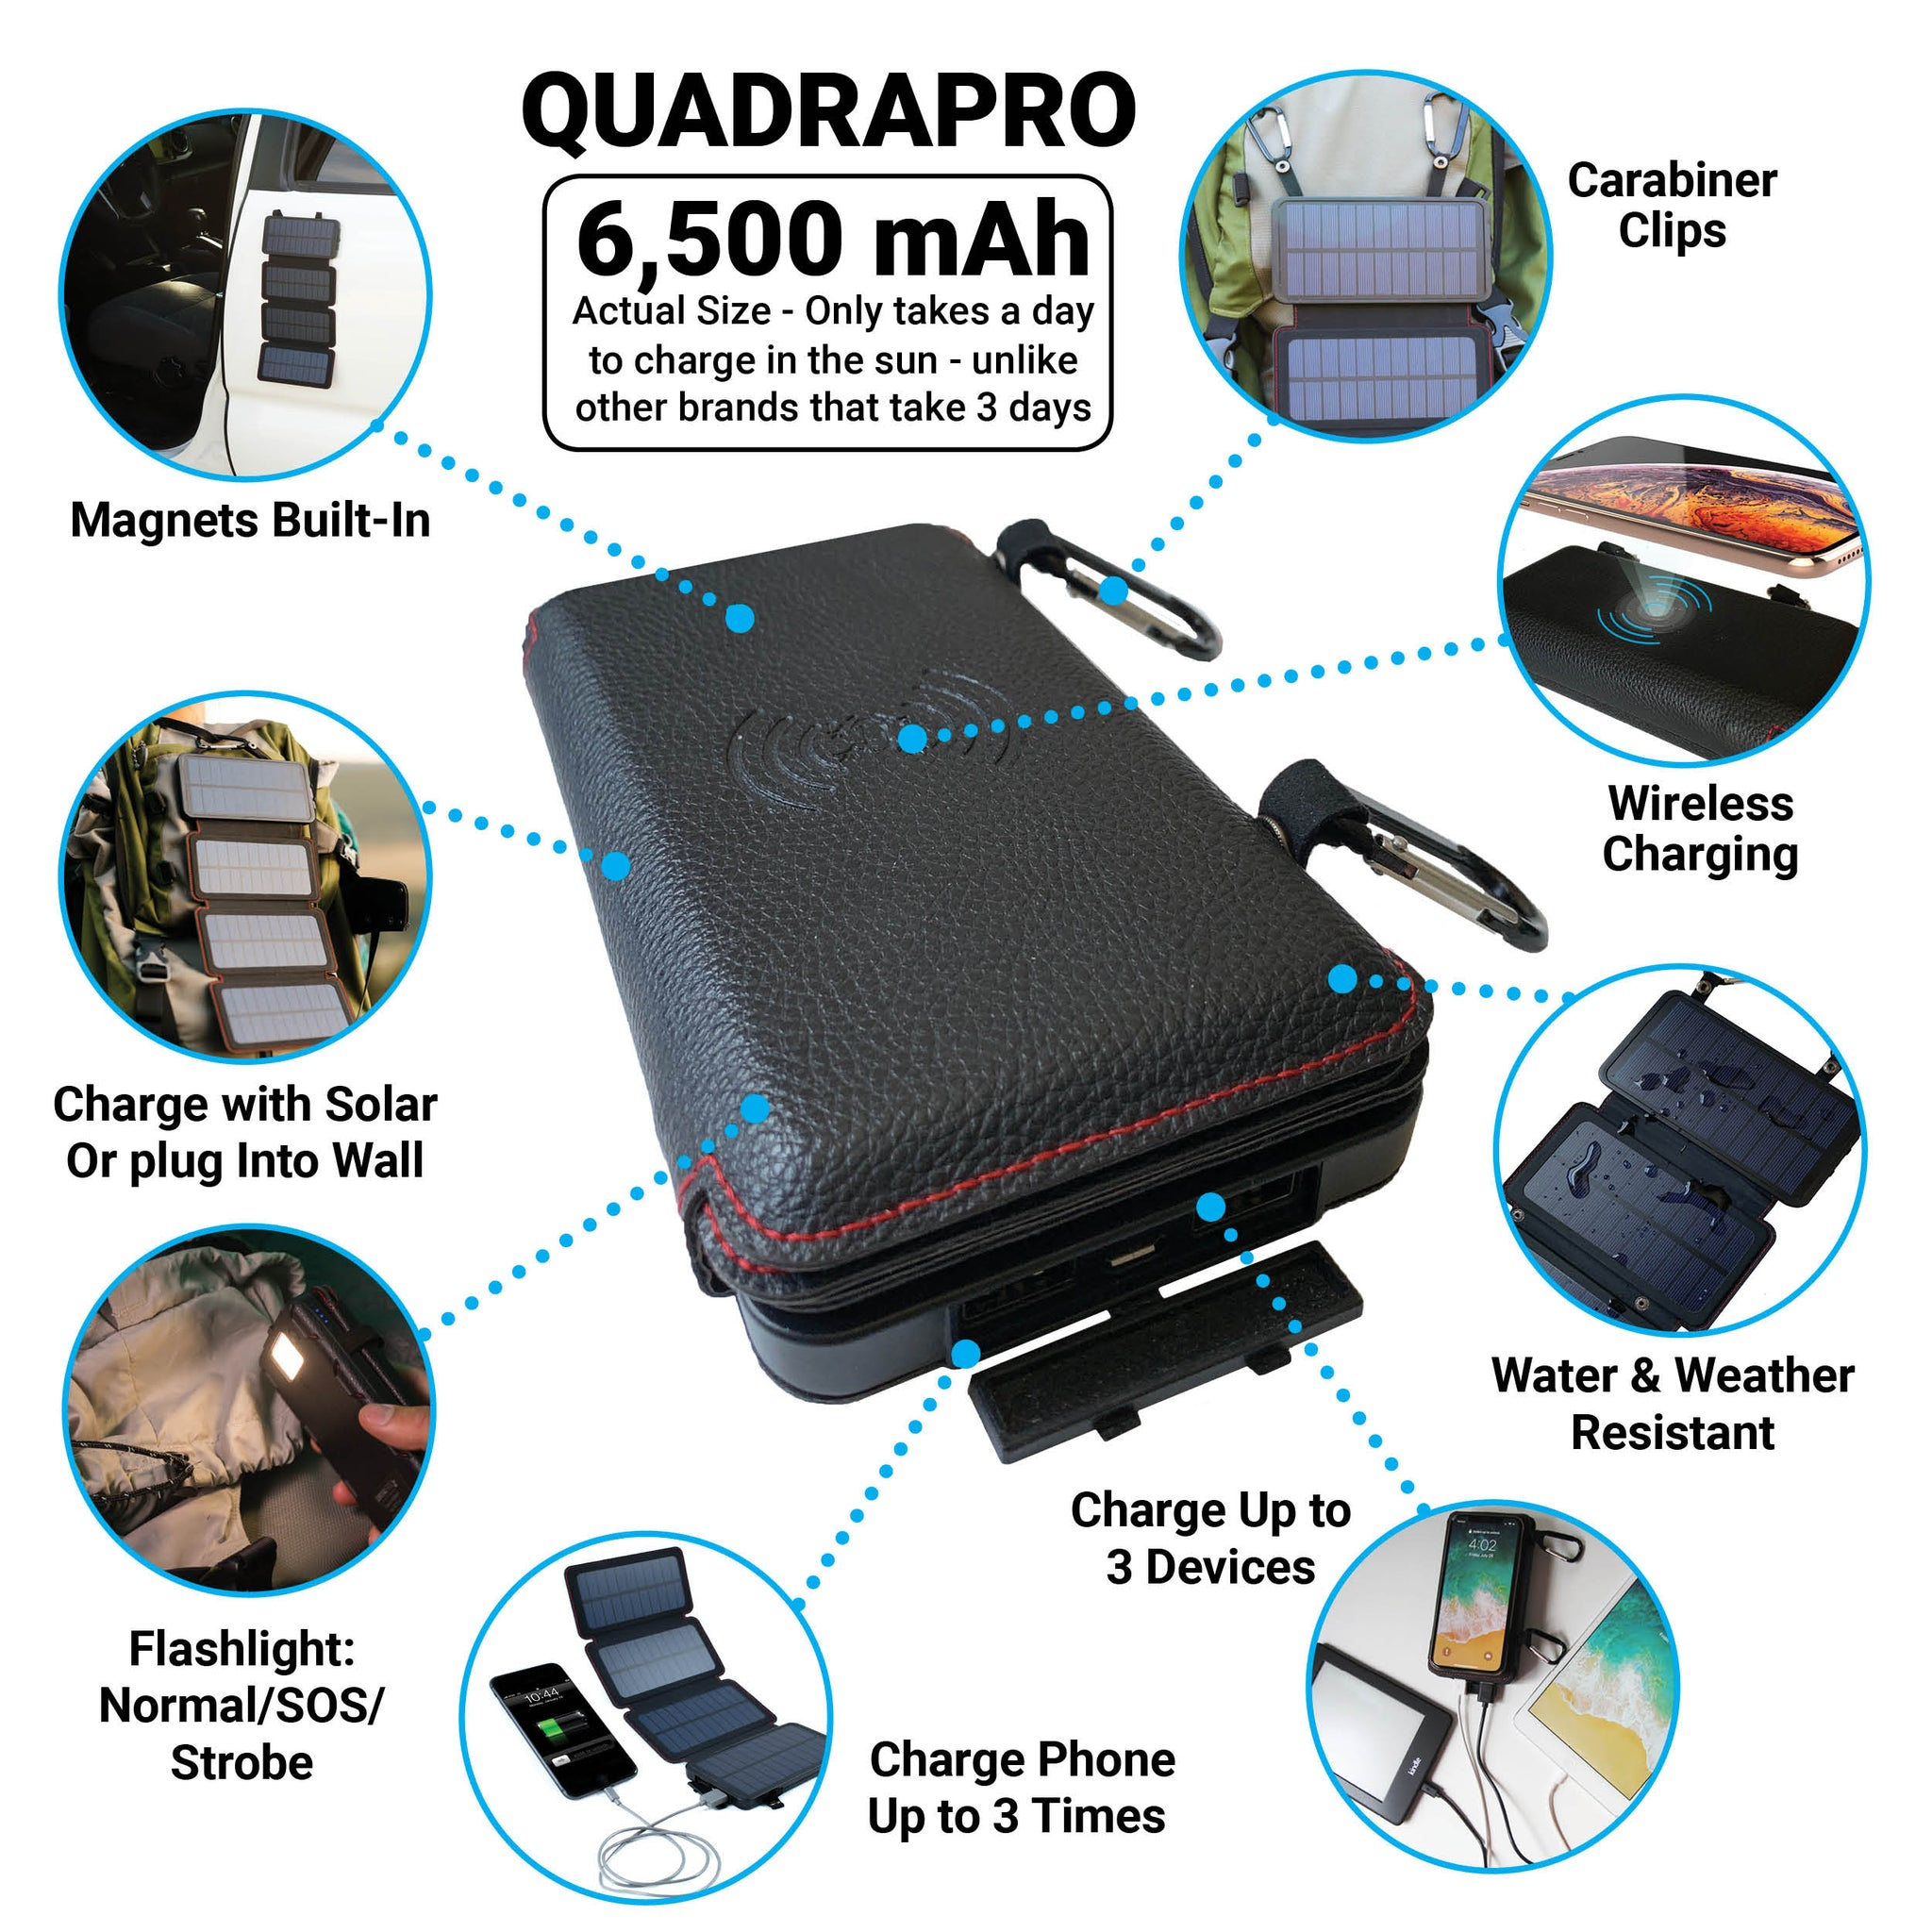 QuadraPro Solar Power Bank - Portable Wireless Cell Phone Charger